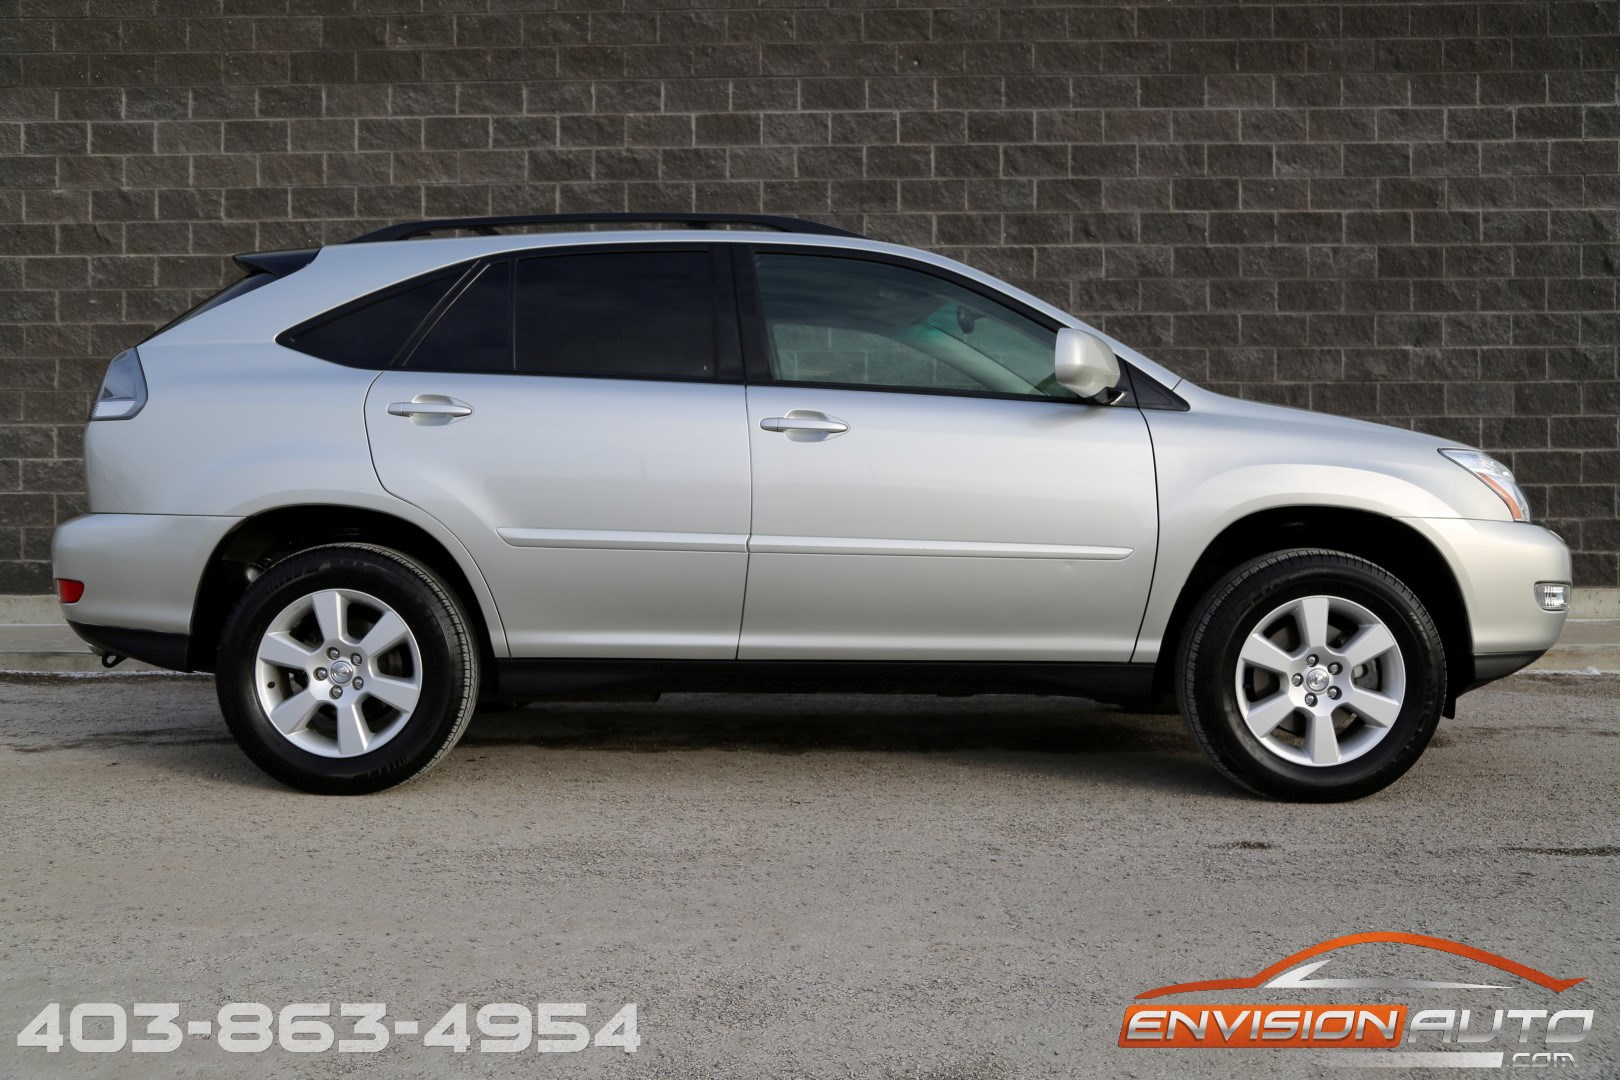 2005 lexus rx330 awd premium envision auto calgary. Black Bedroom Furniture Sets. Home Design Ideas